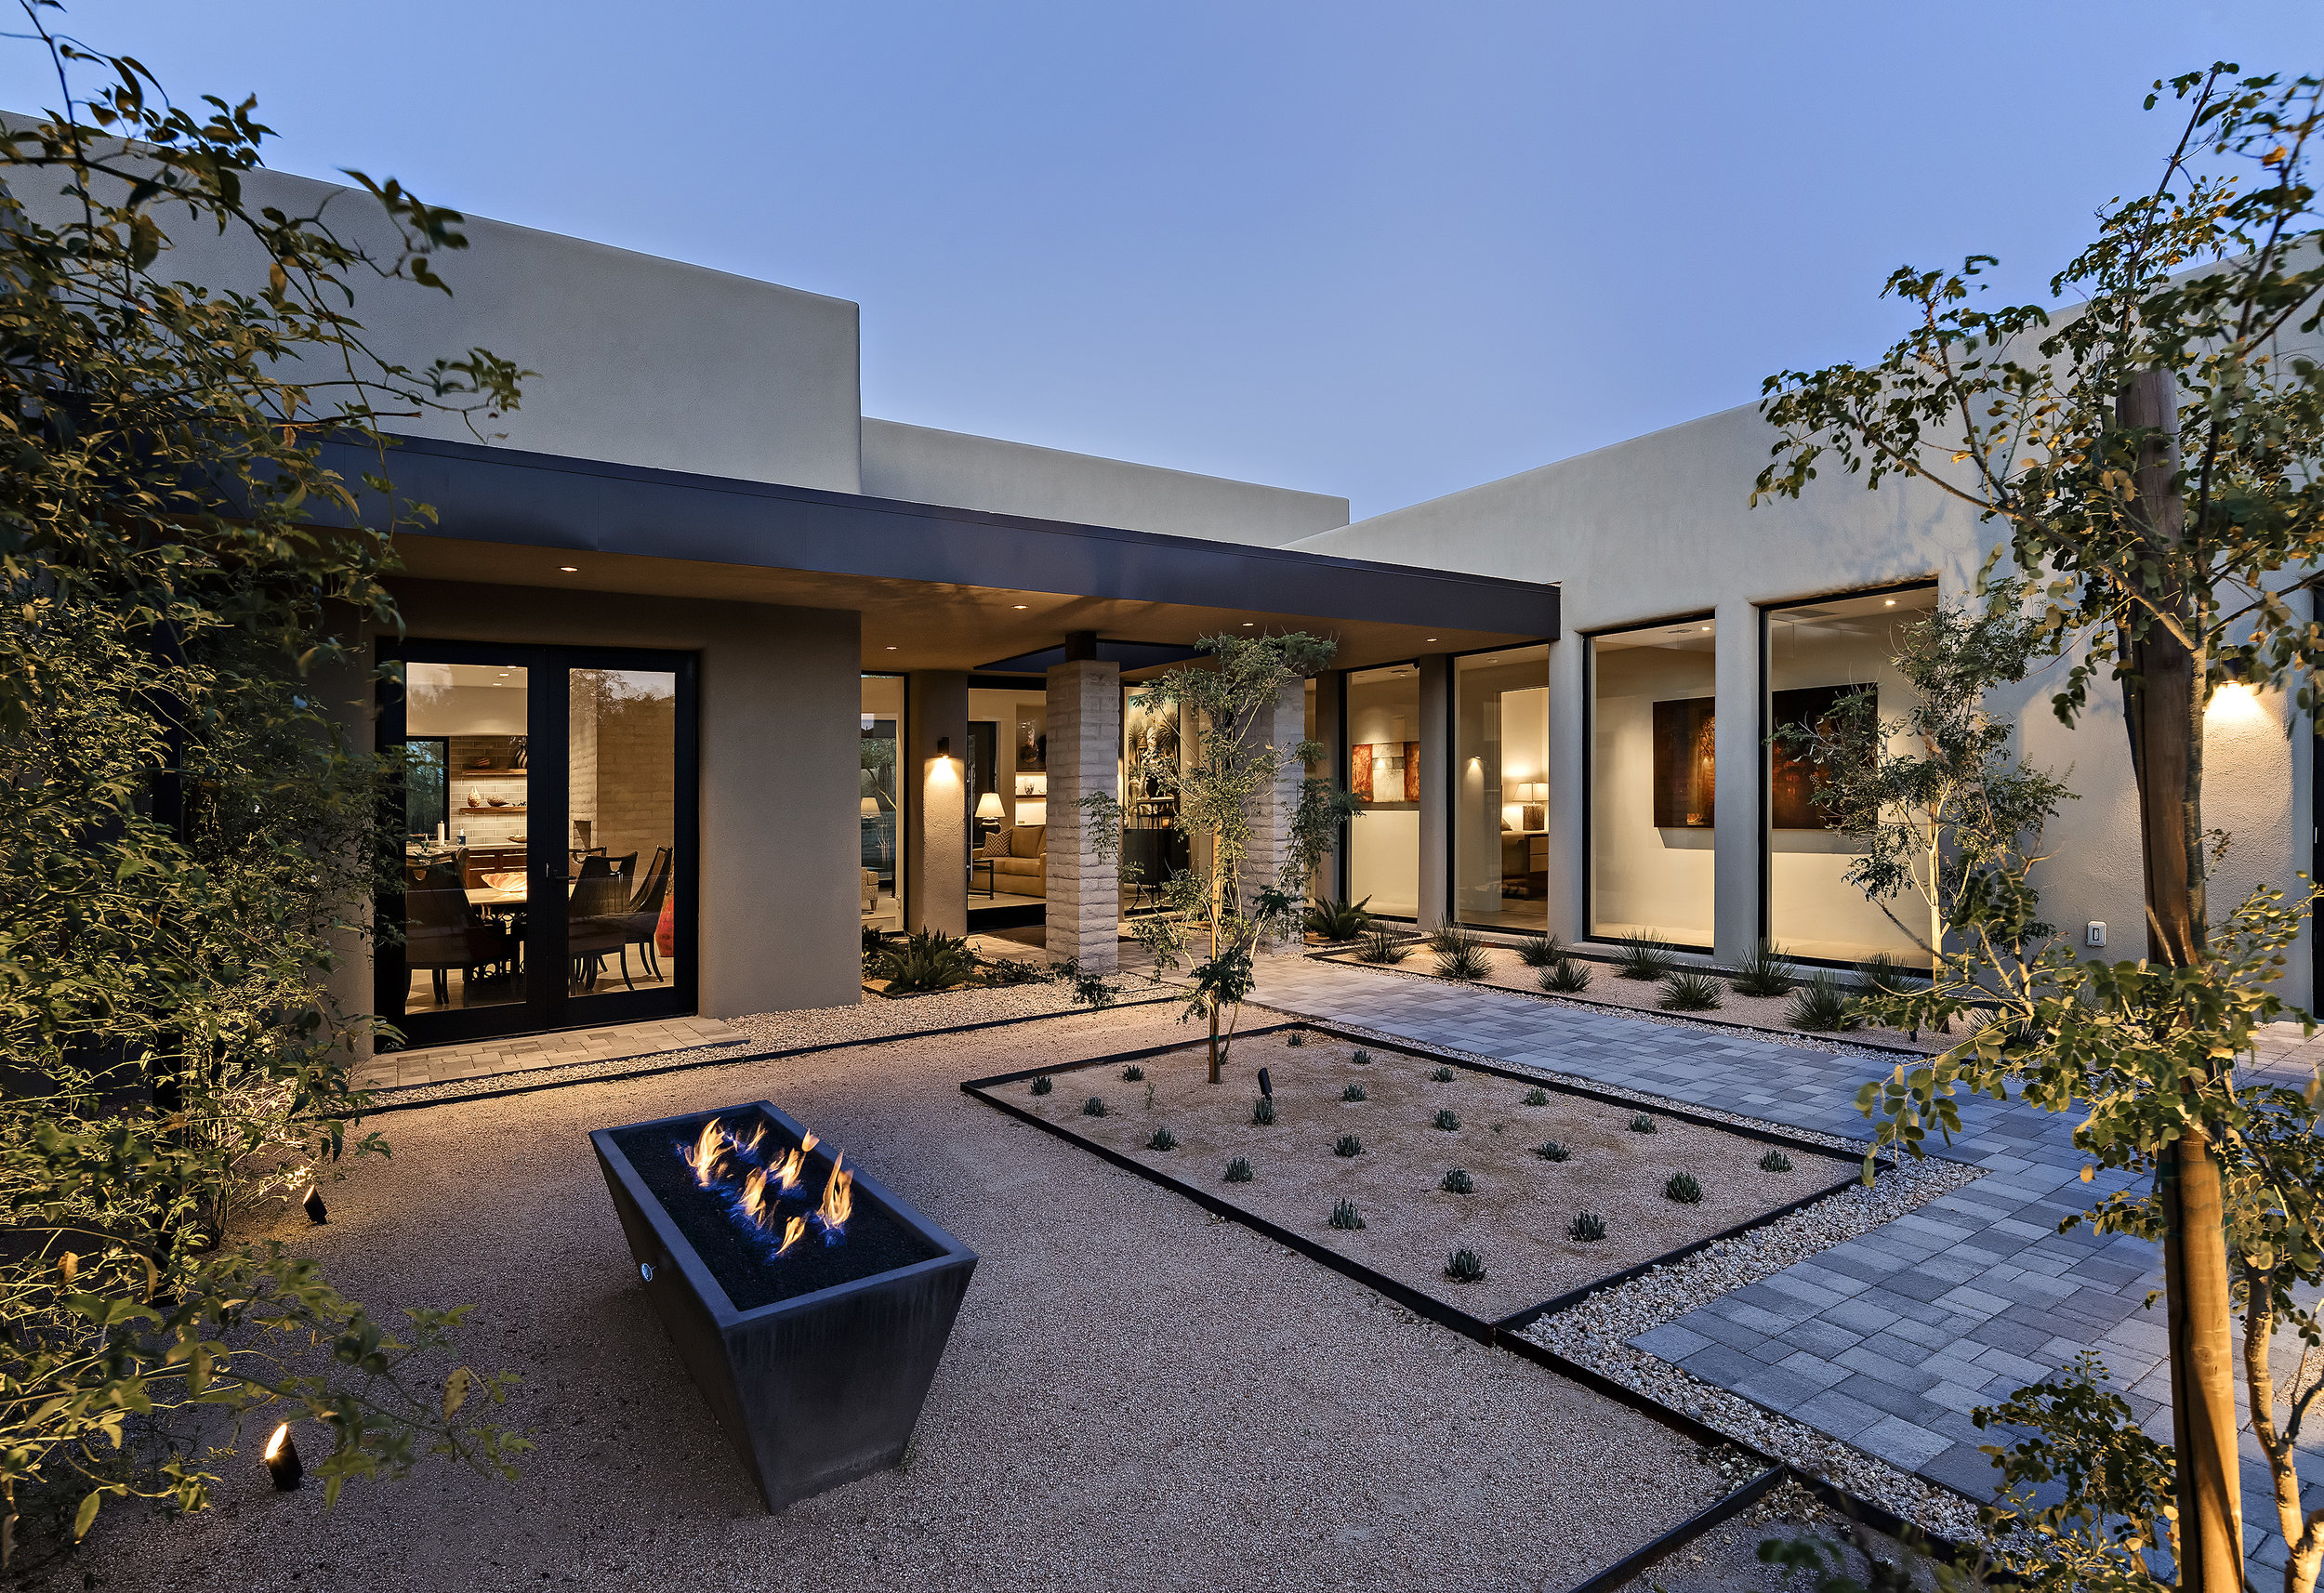 0003 - Front Exterior Fire Pit.jpg